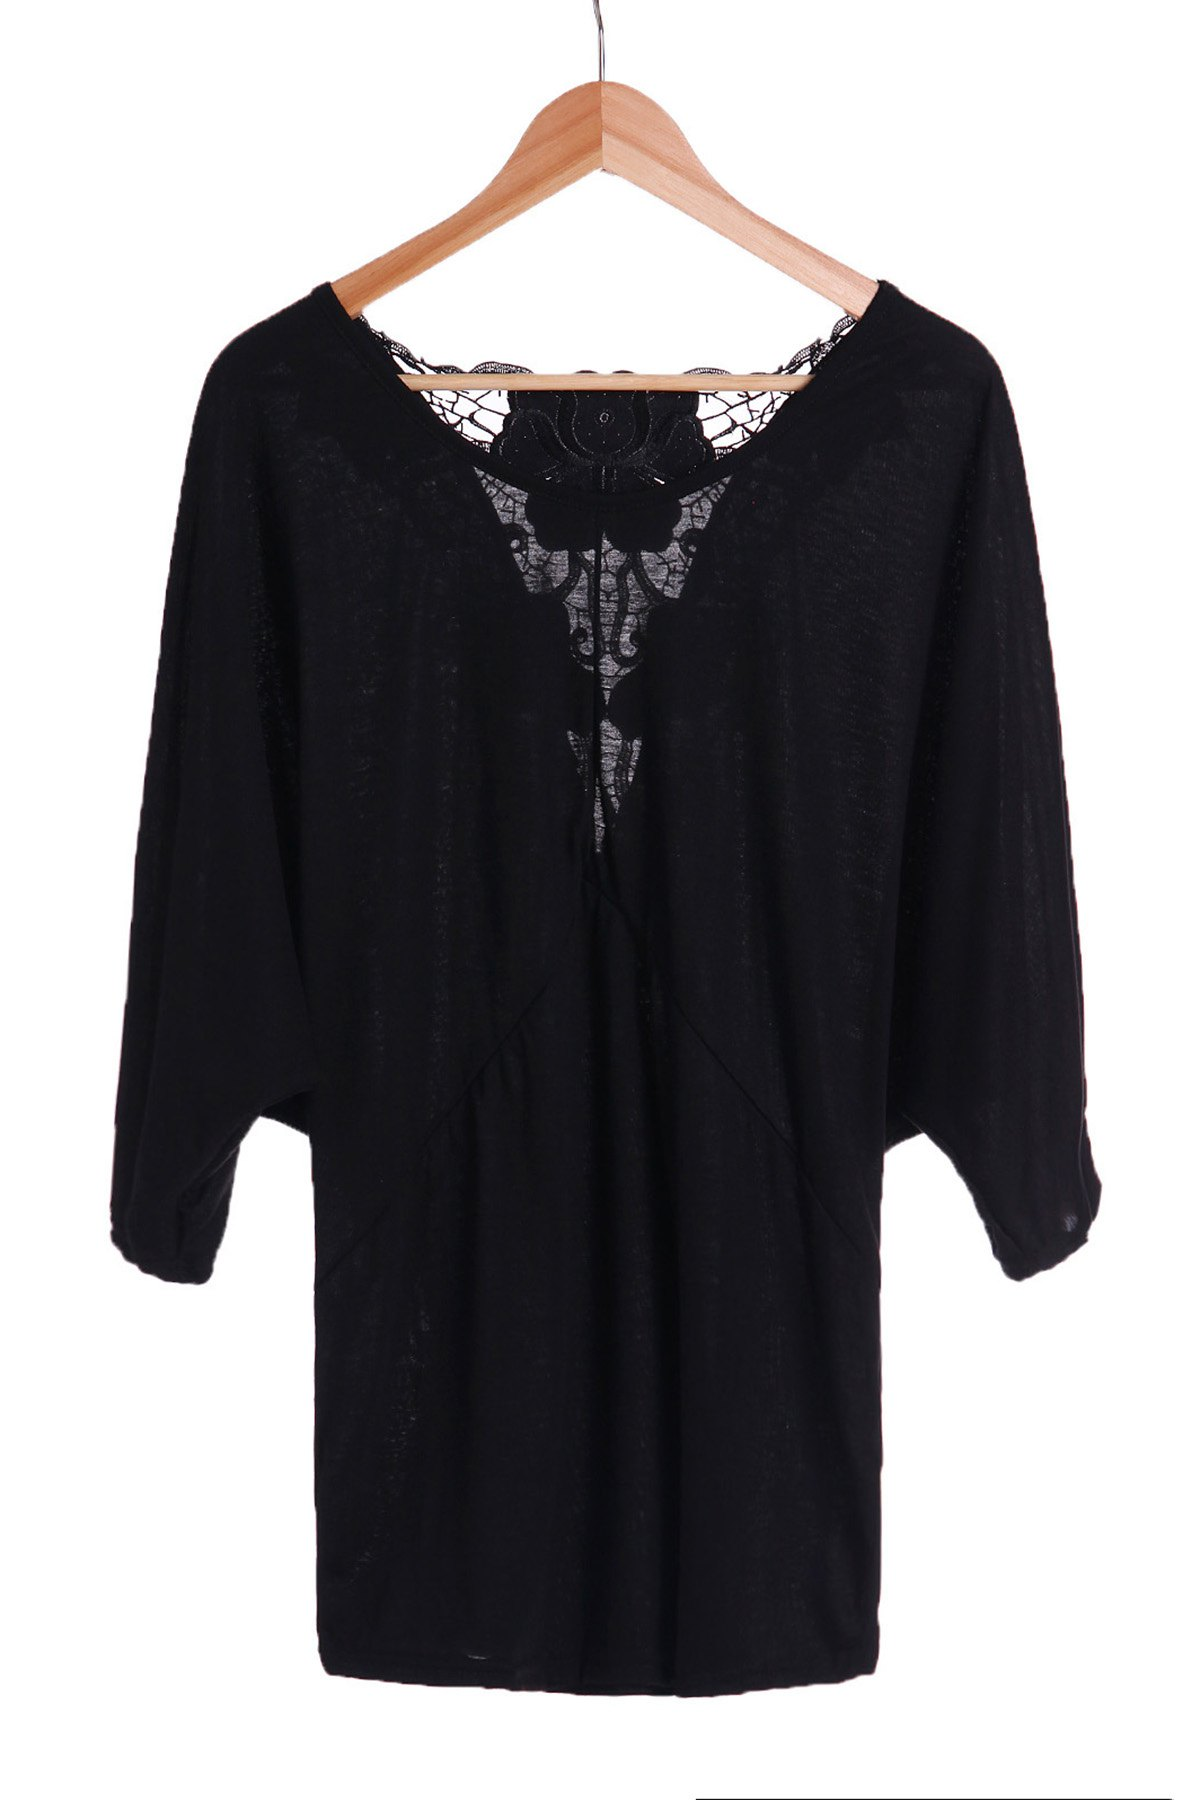 Trendy Backless Lace Spliced Batwing Sleeve Black Blouse For Women